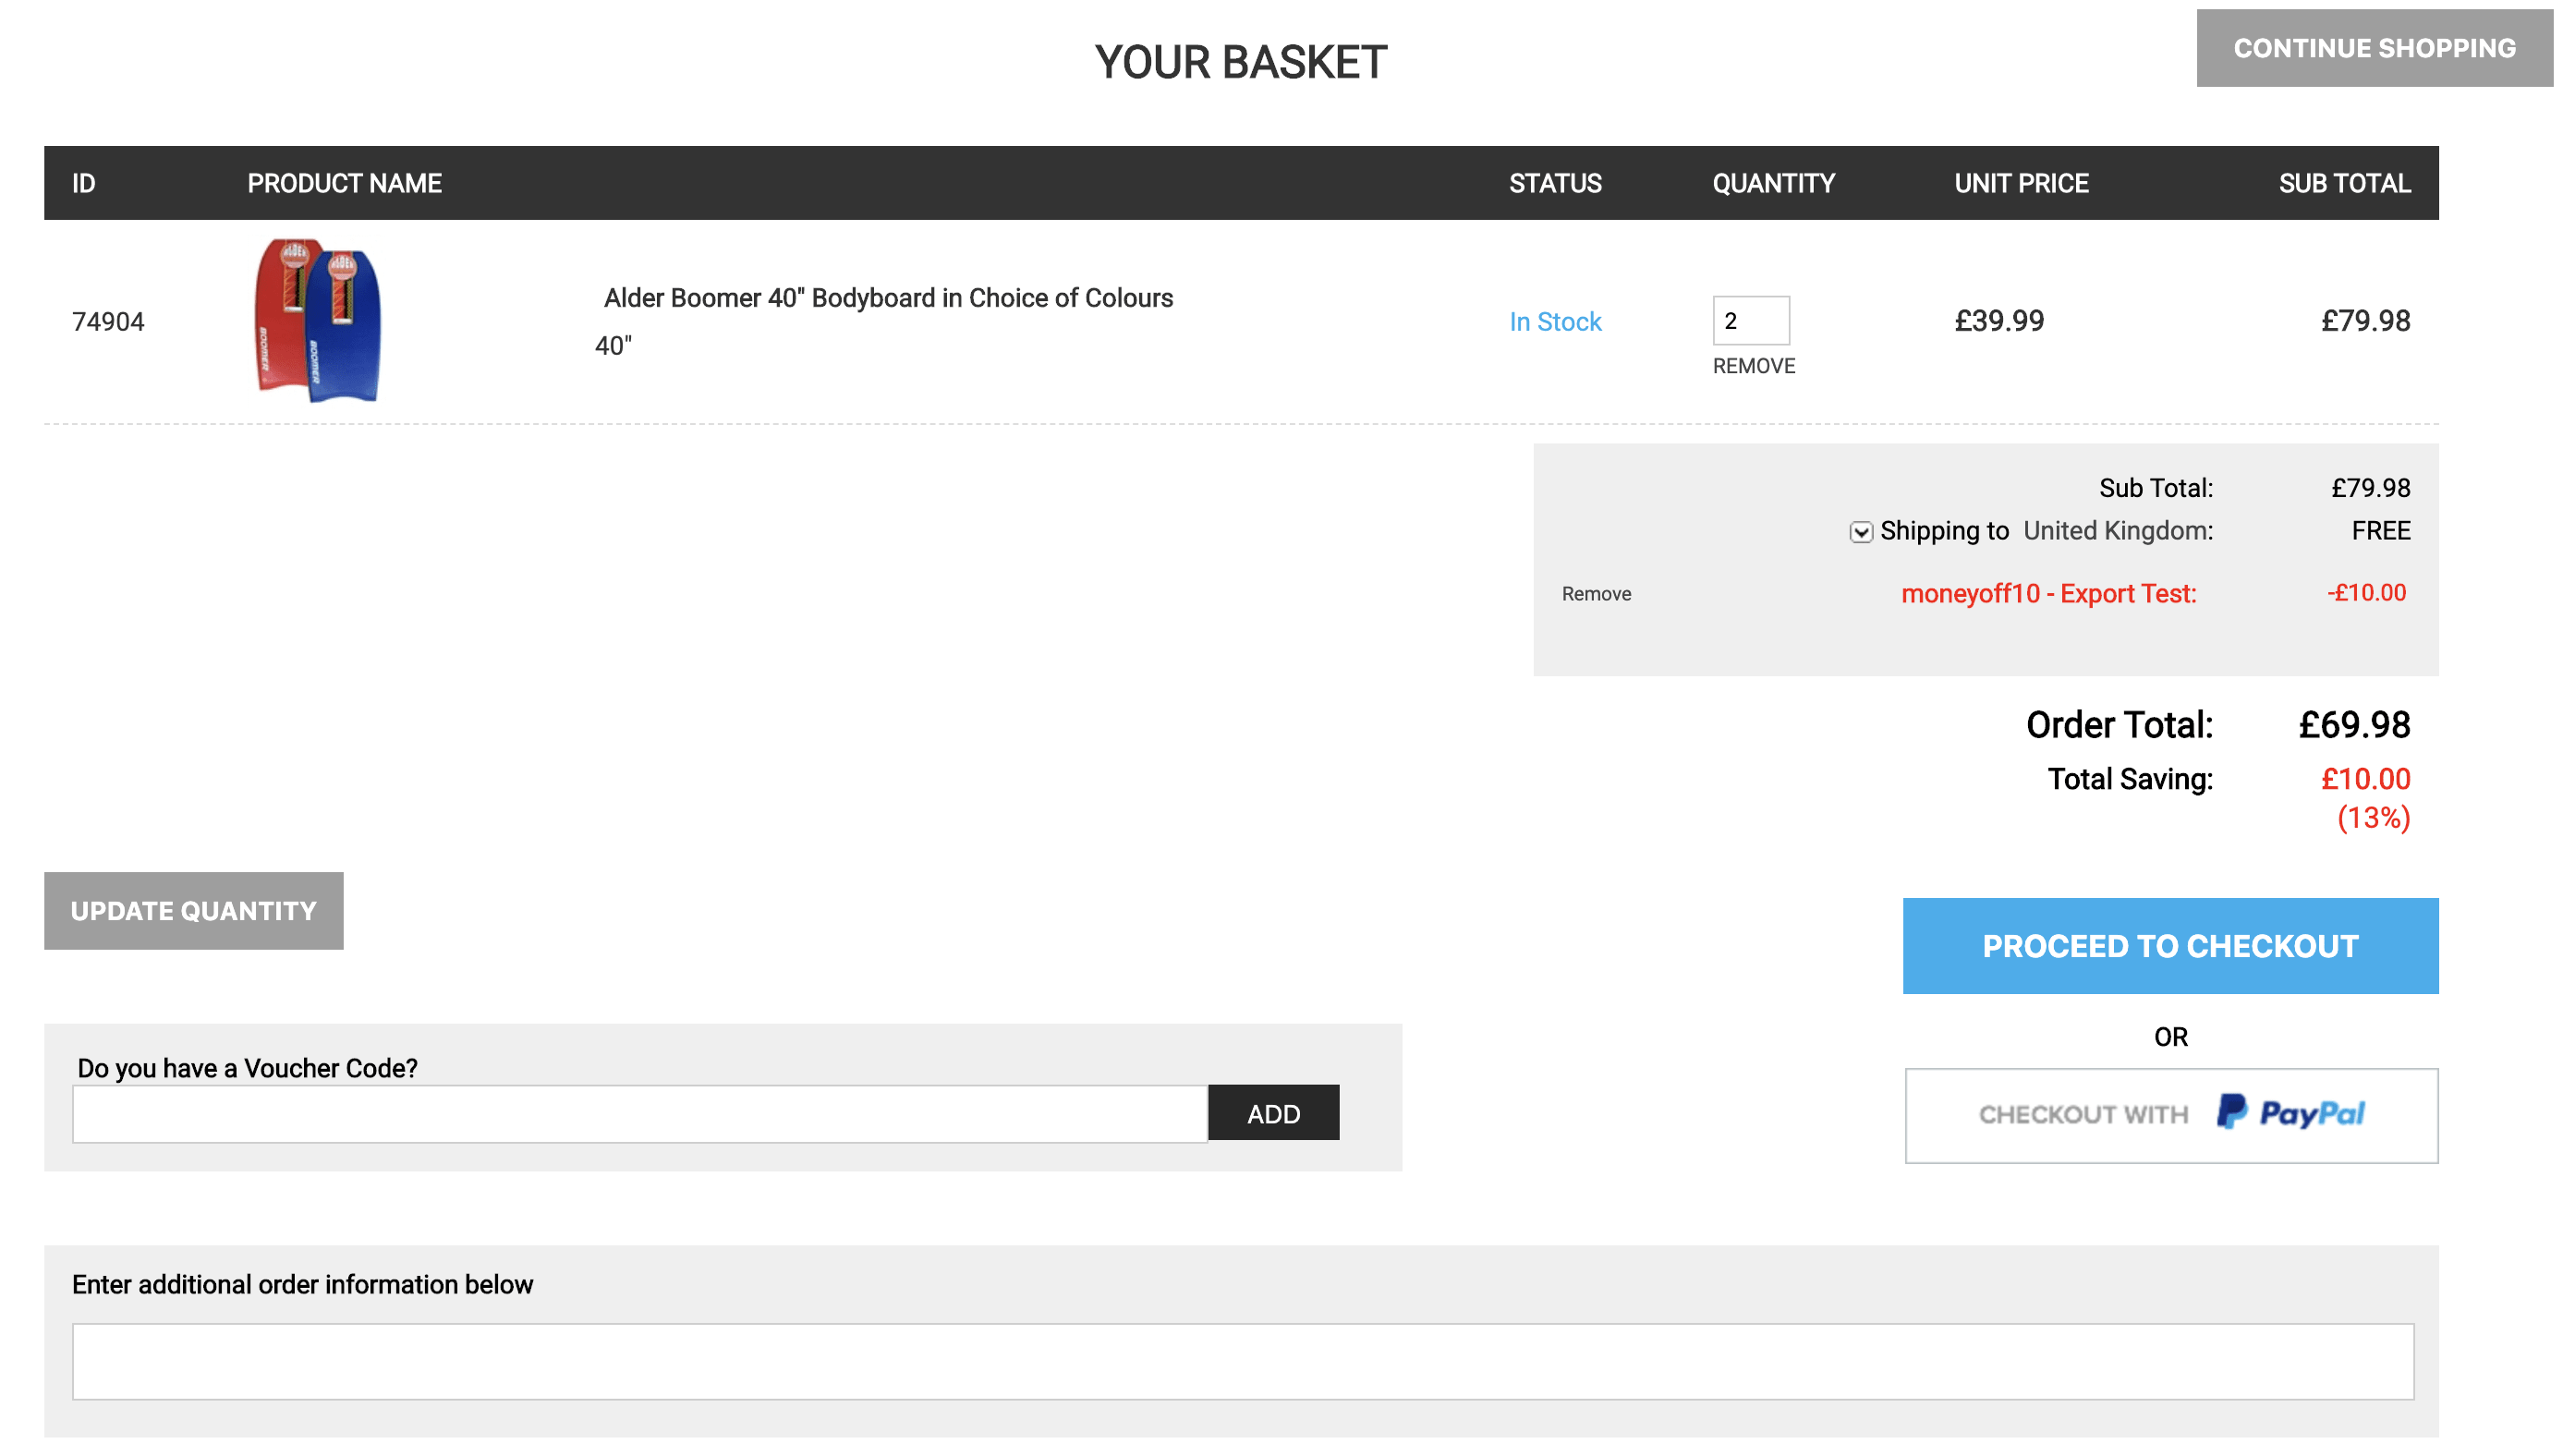 Basket - Promo Code Applied